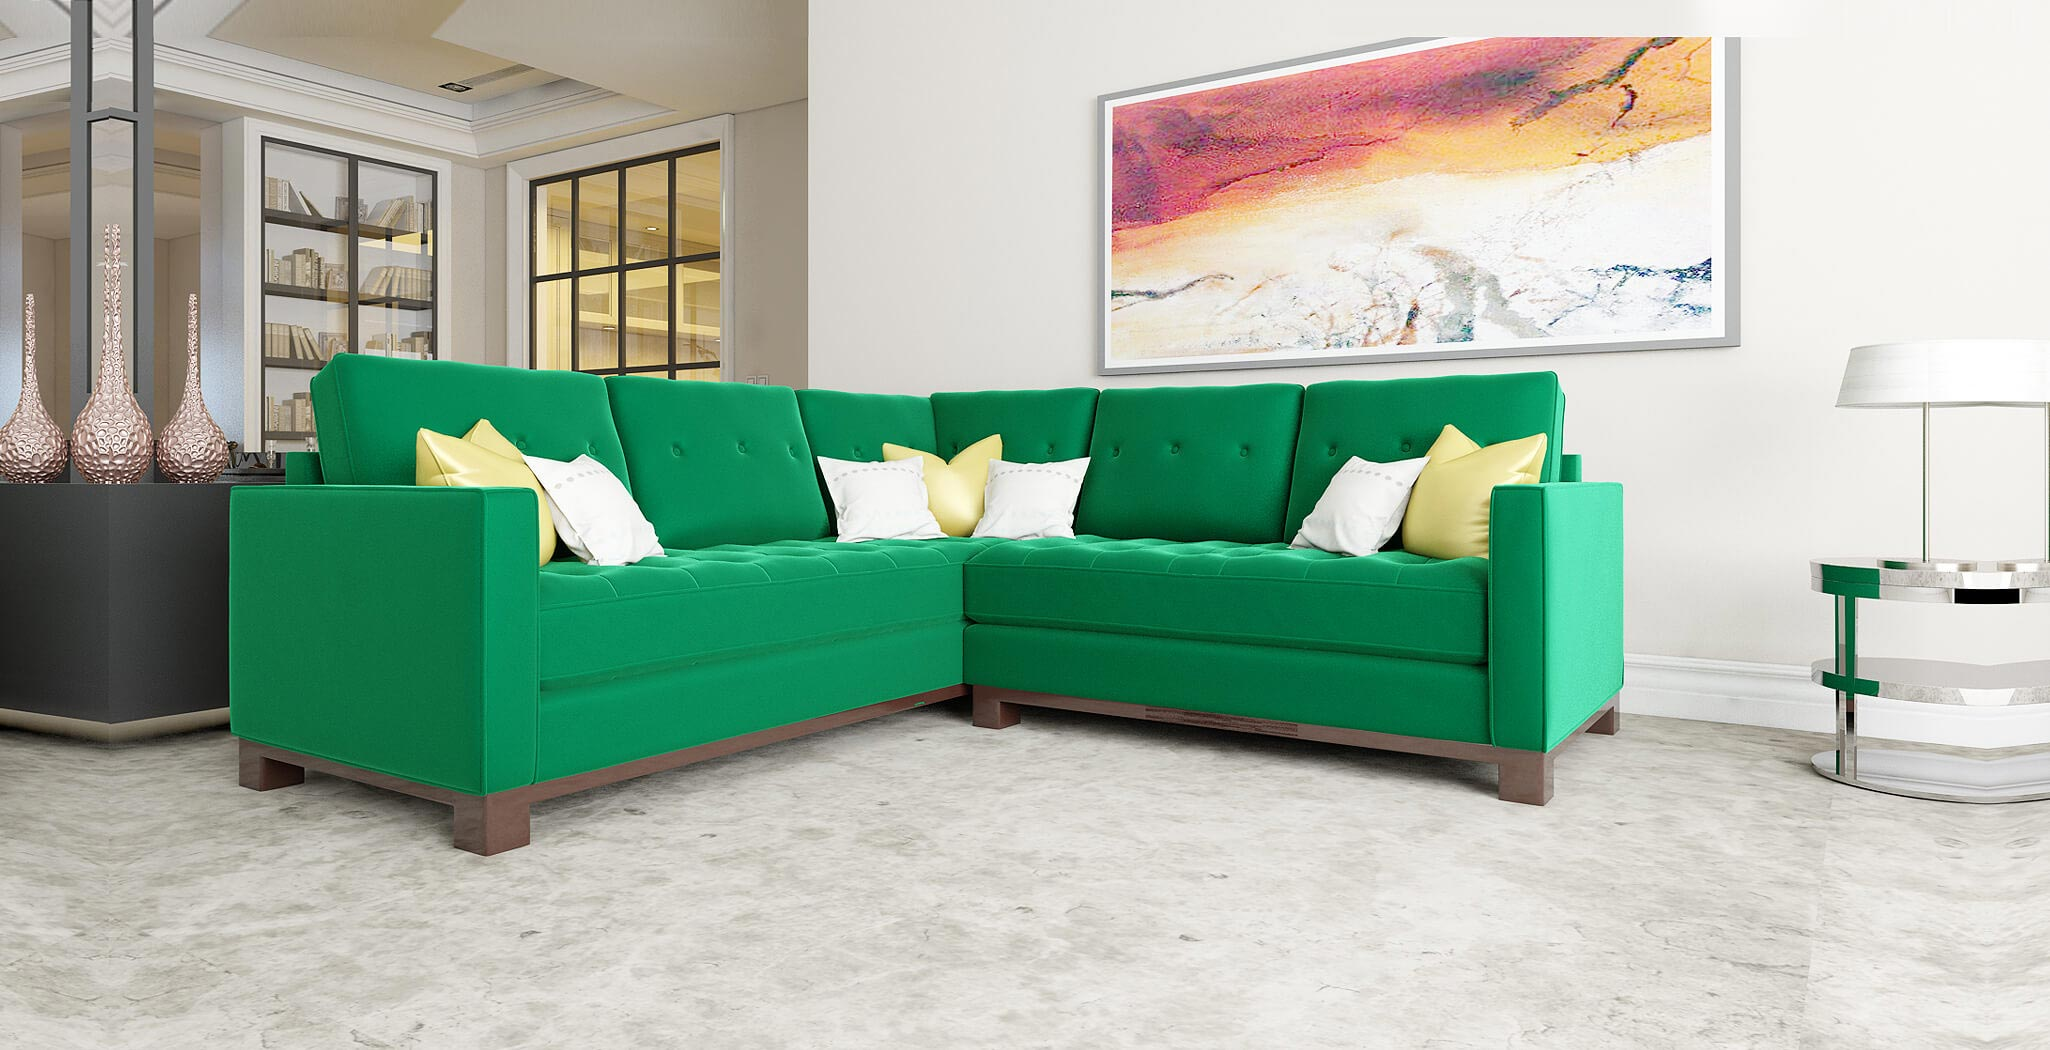 syros sectional furniture gallery 5